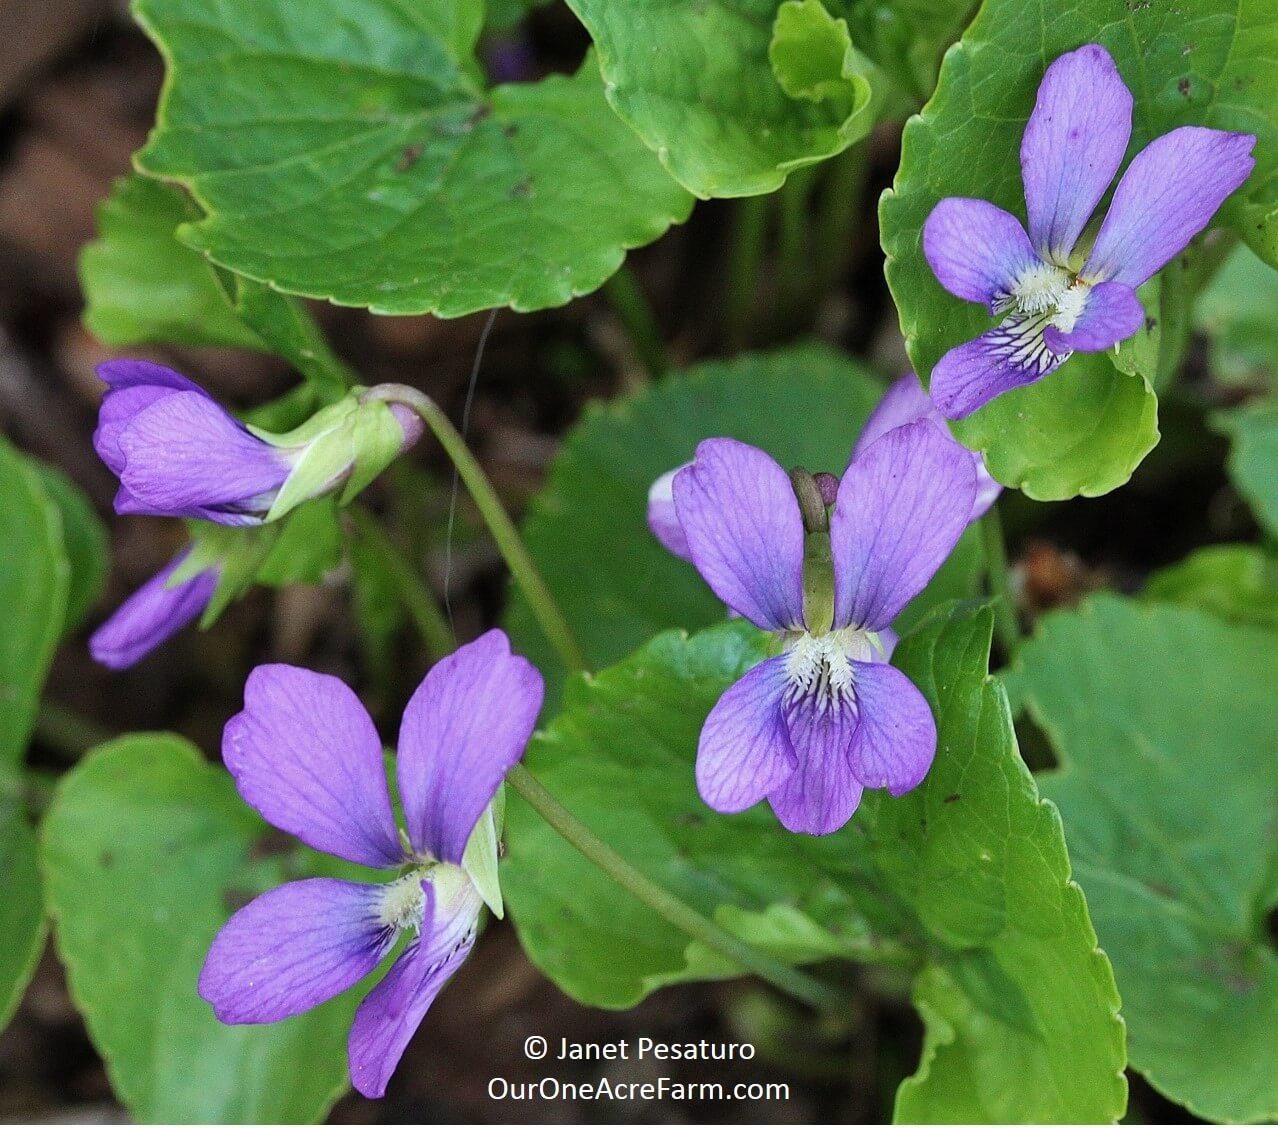 12 Native Plants For Food And Medicine